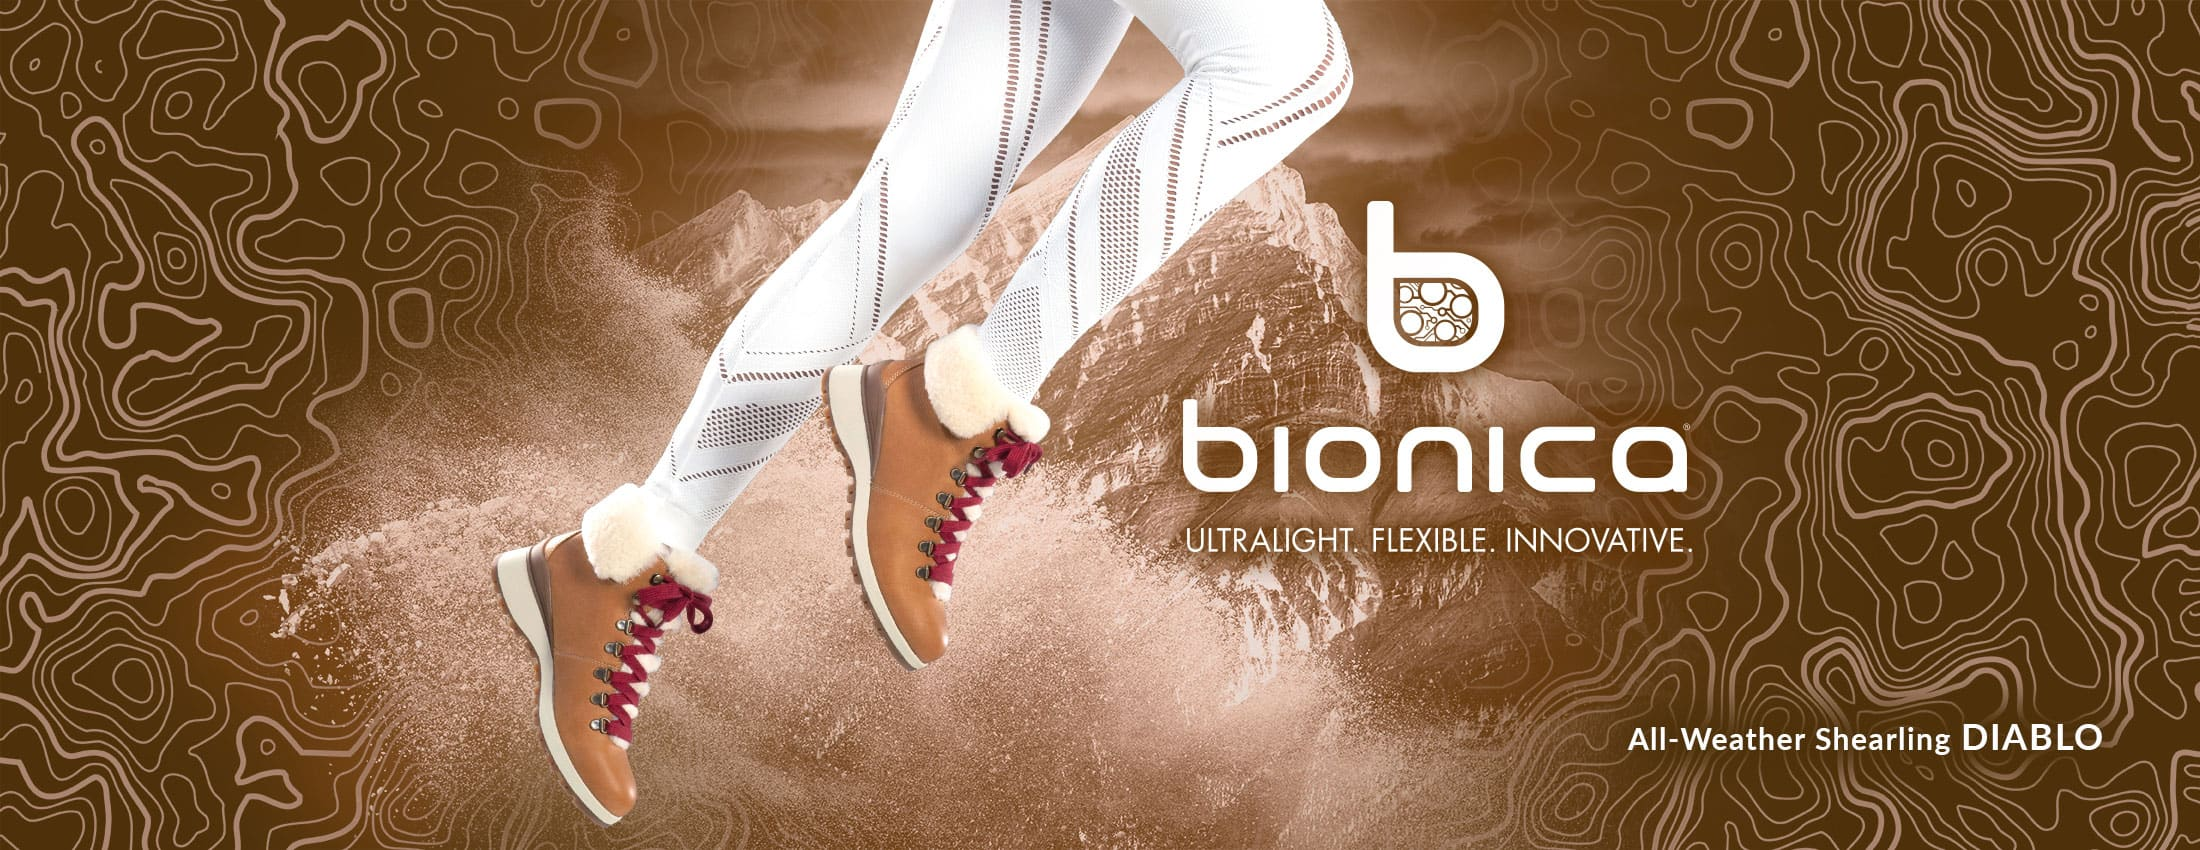 Bionica: Ultralight, Flexible, Innovative. Featured style: All-Weather Shearling Diablo boot, shown in luggage brown with red laces on jumping model